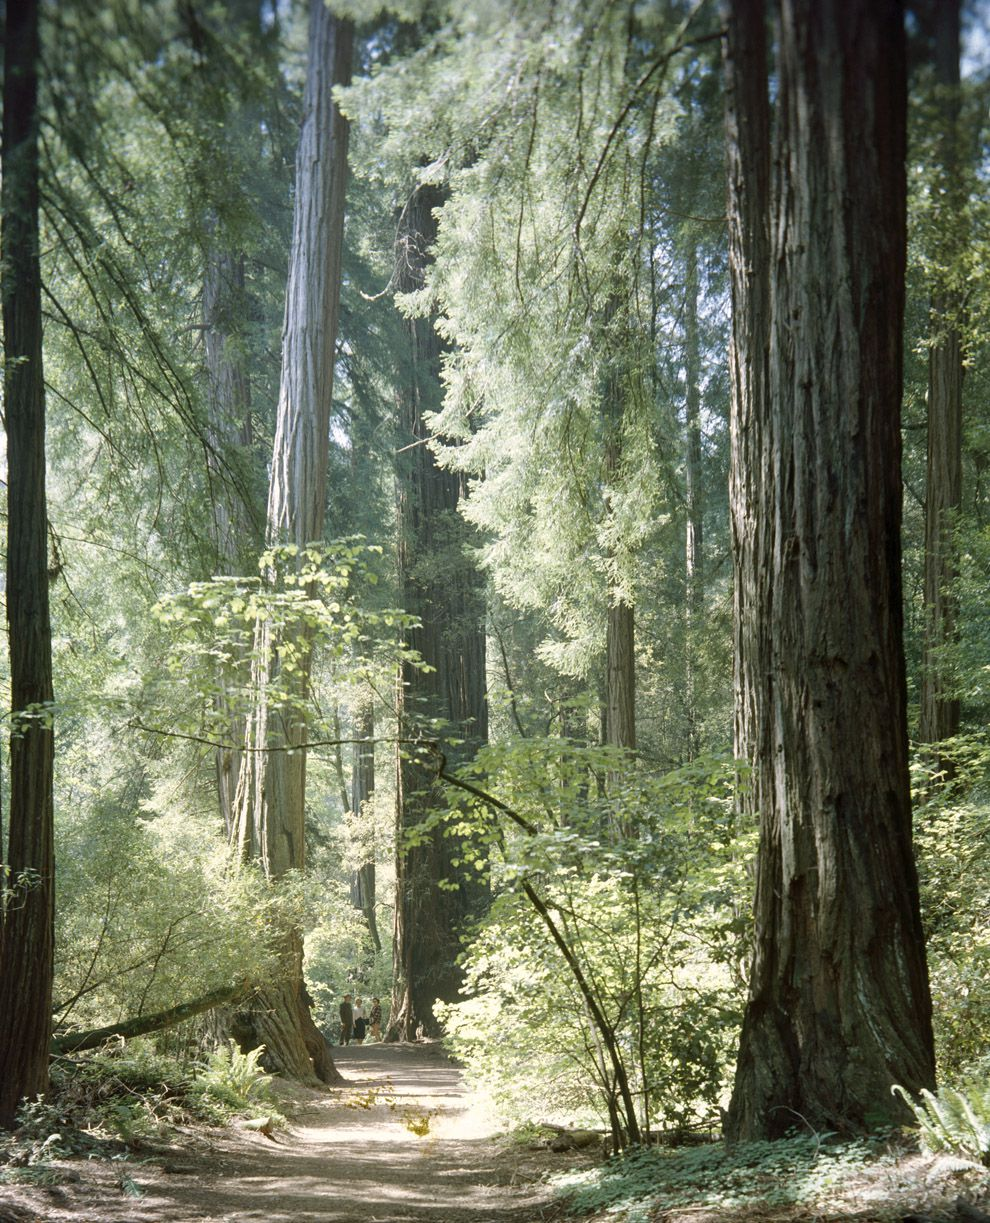 Muir Woods National Geographic Society